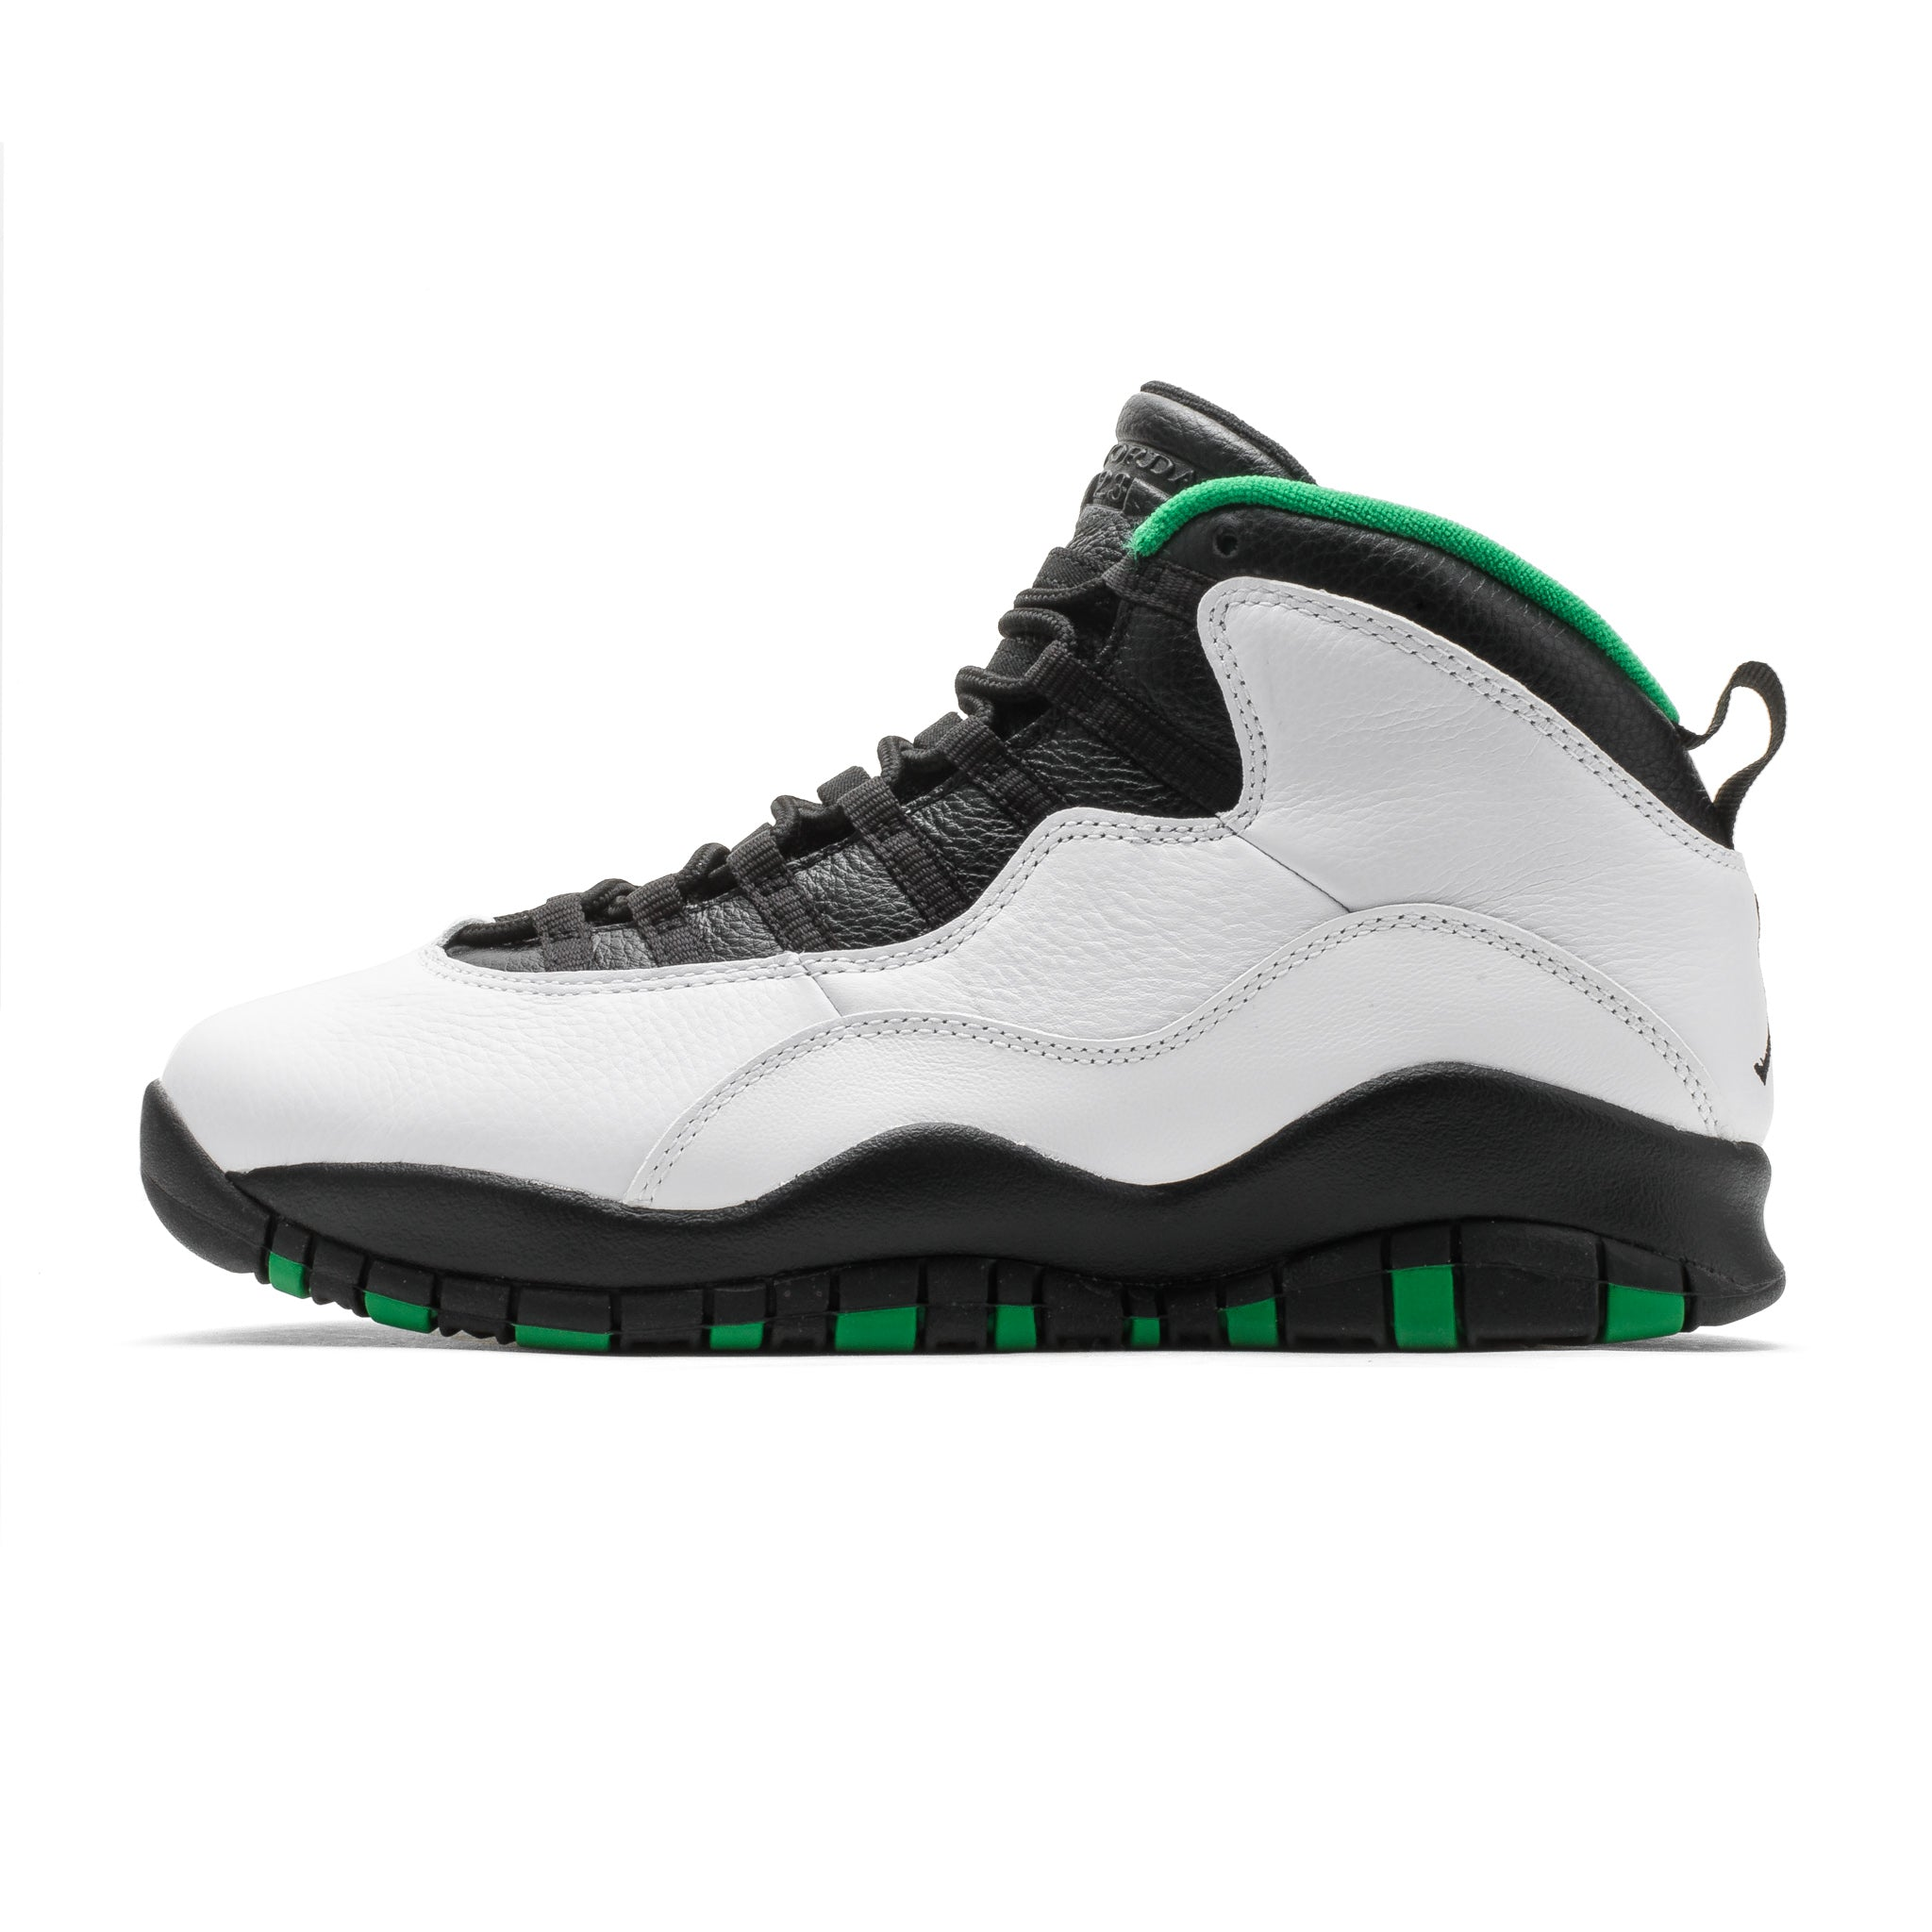 Air Jordan 10 Retro 310805-137 White – Capsule Online